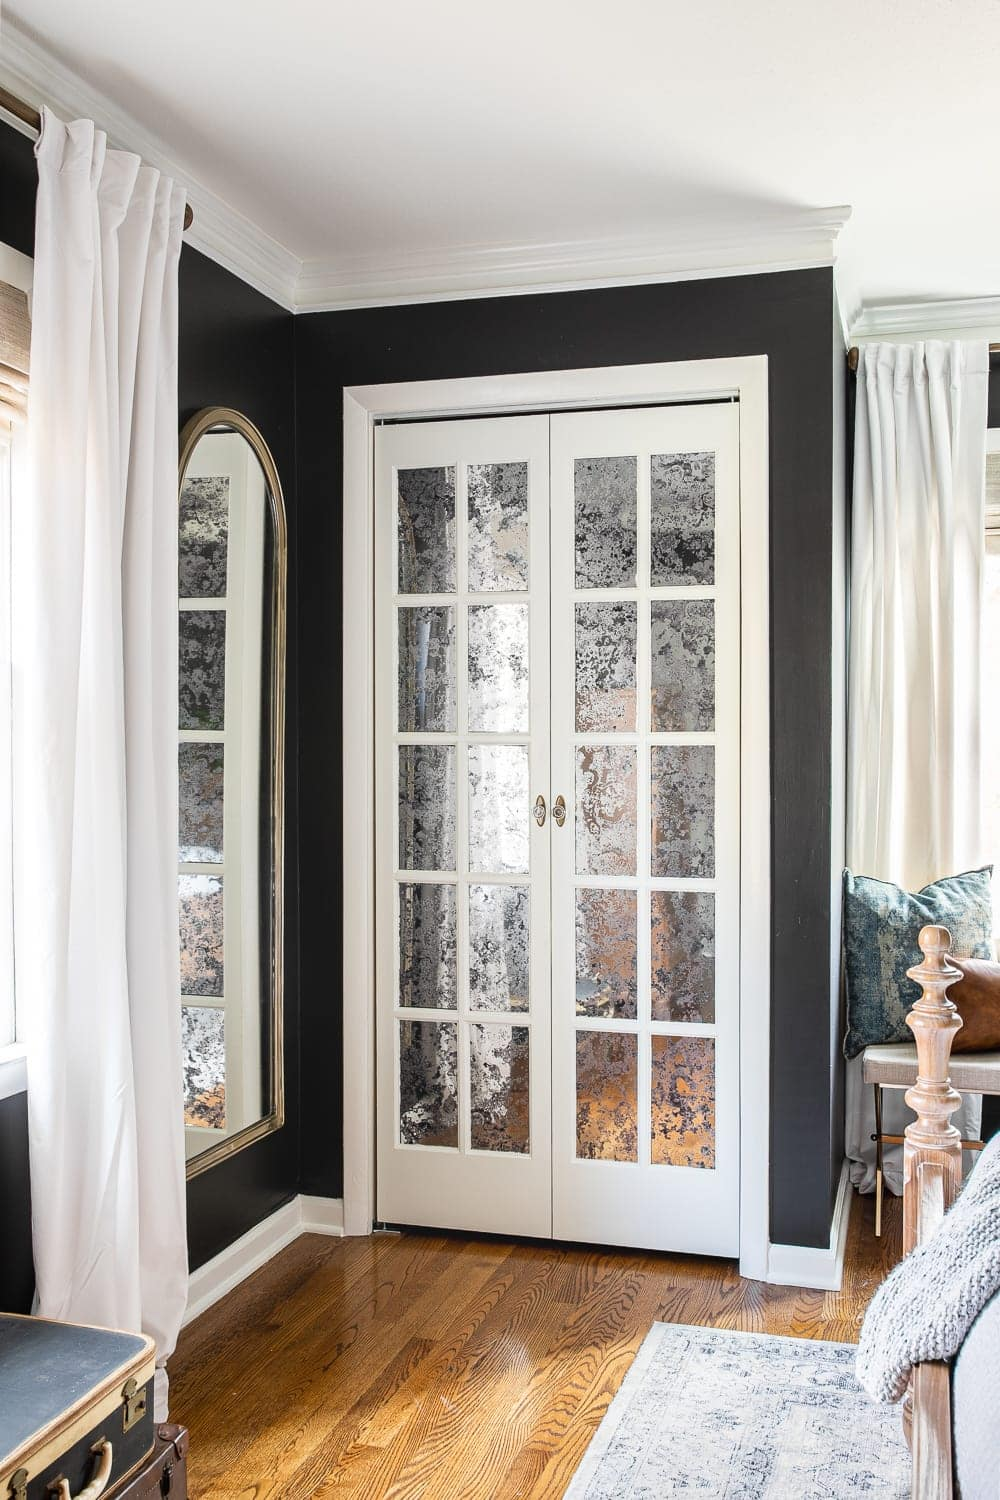 Mirrored French Closet Doors | How we created a vintage style, glamorous solution for our bifold doors on our master bedroom's his and her closets for added light and texture. #closetdoor #bifolddoor #vintagedoor